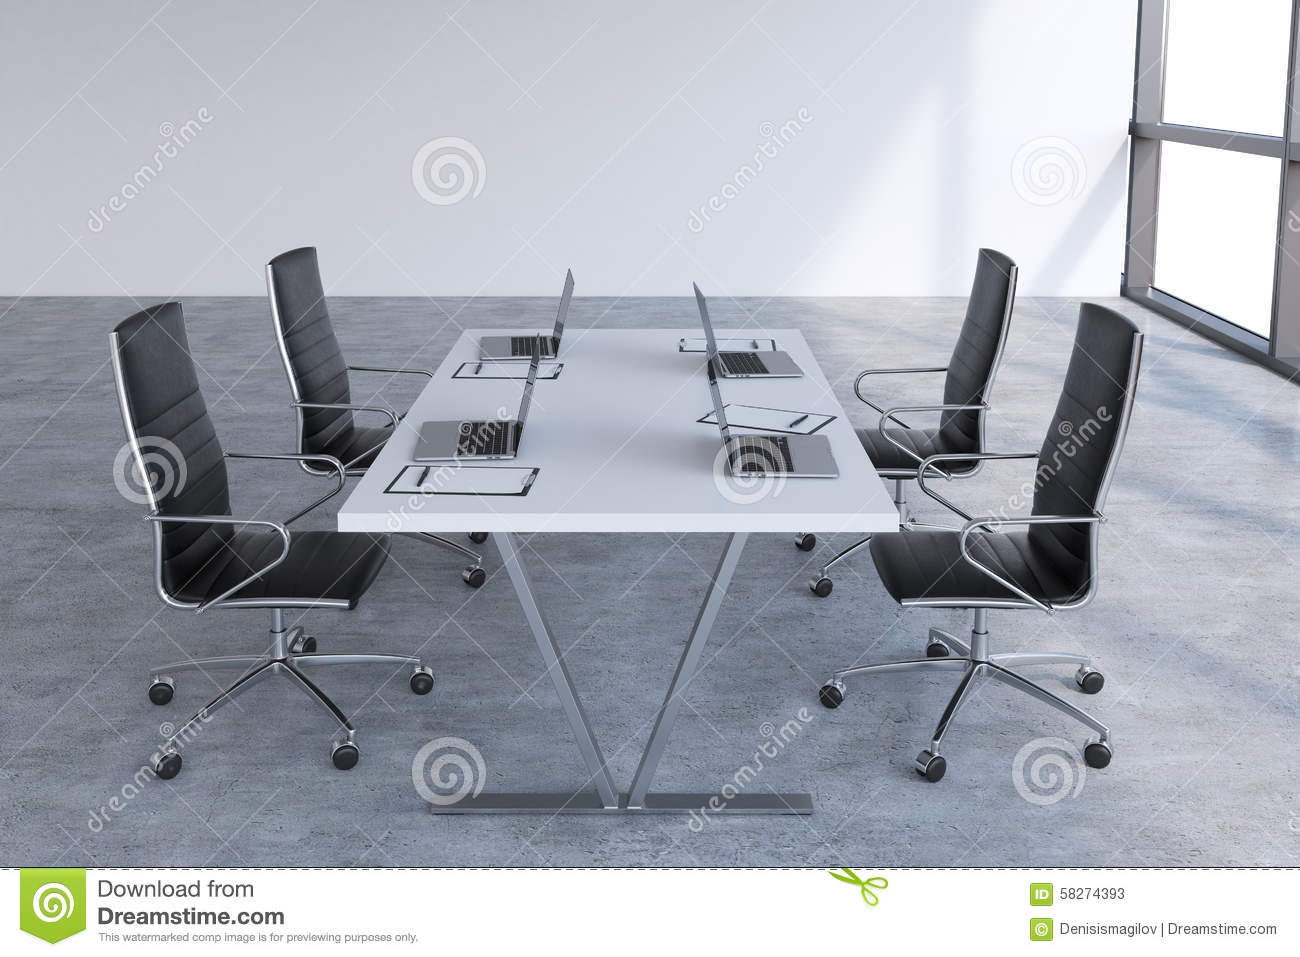 white conference room chairs  bedroom and living room image  - conference room with black table black chairs and laptops stock modernmeeting room with huge windows